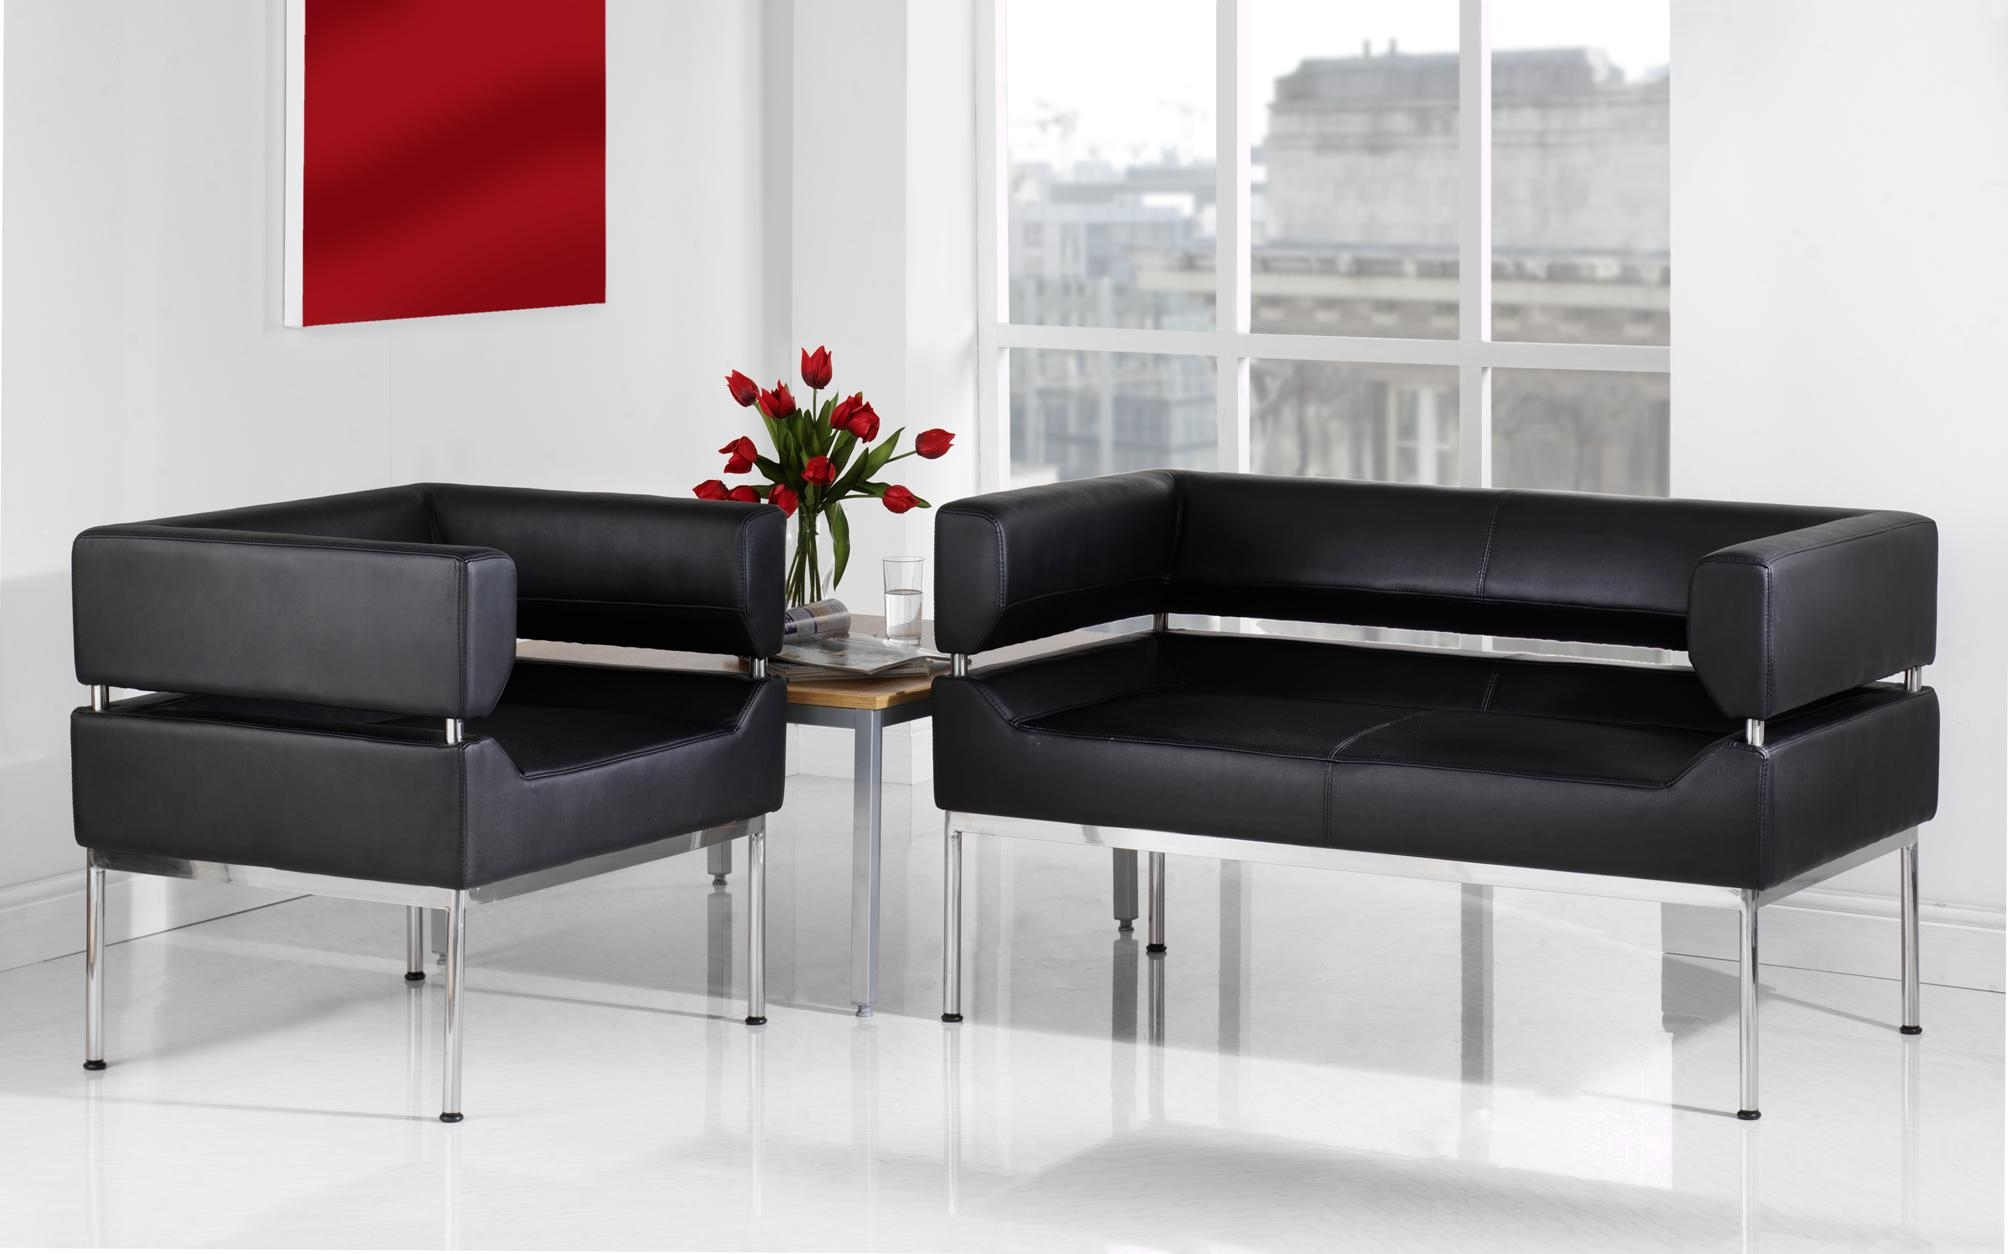 Trend Small Couch For Office 94 Office Sofa Ideas With Small Couch In Small Office Sofas (View 14 of 20)